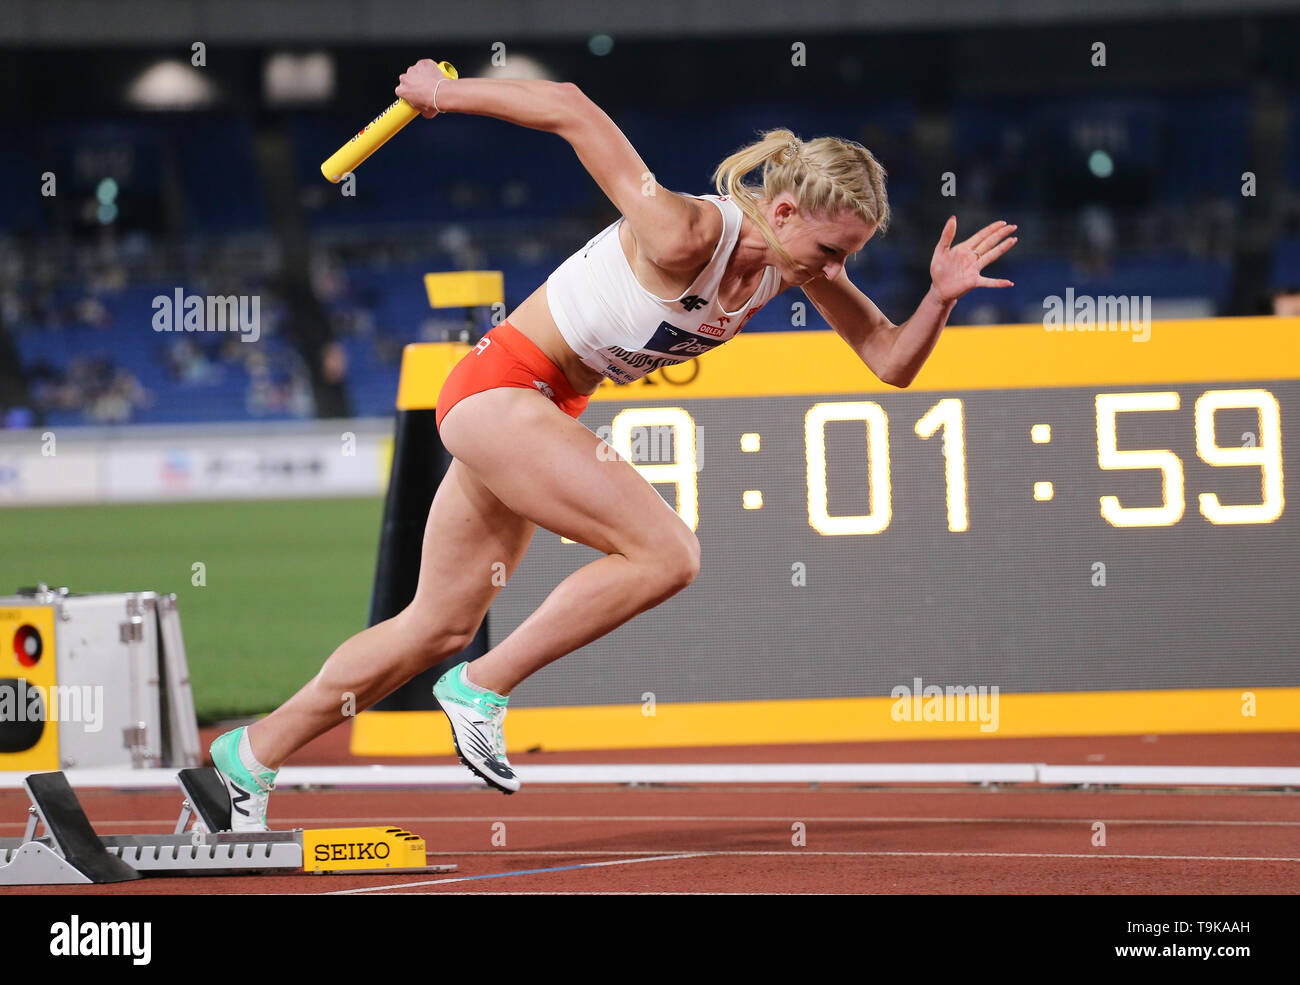 YOKOHAMA, JAPAN - MAY 10: Matgorzata Holub-Kowalik of Poland during Day 1 of the 2019 IAAF World Relay Championships at the Nissan Stadium on Saturday May 11, 2019 in Yokohama, Japan. (Photo by Roger Sedres for the IAAF) - Stock Image